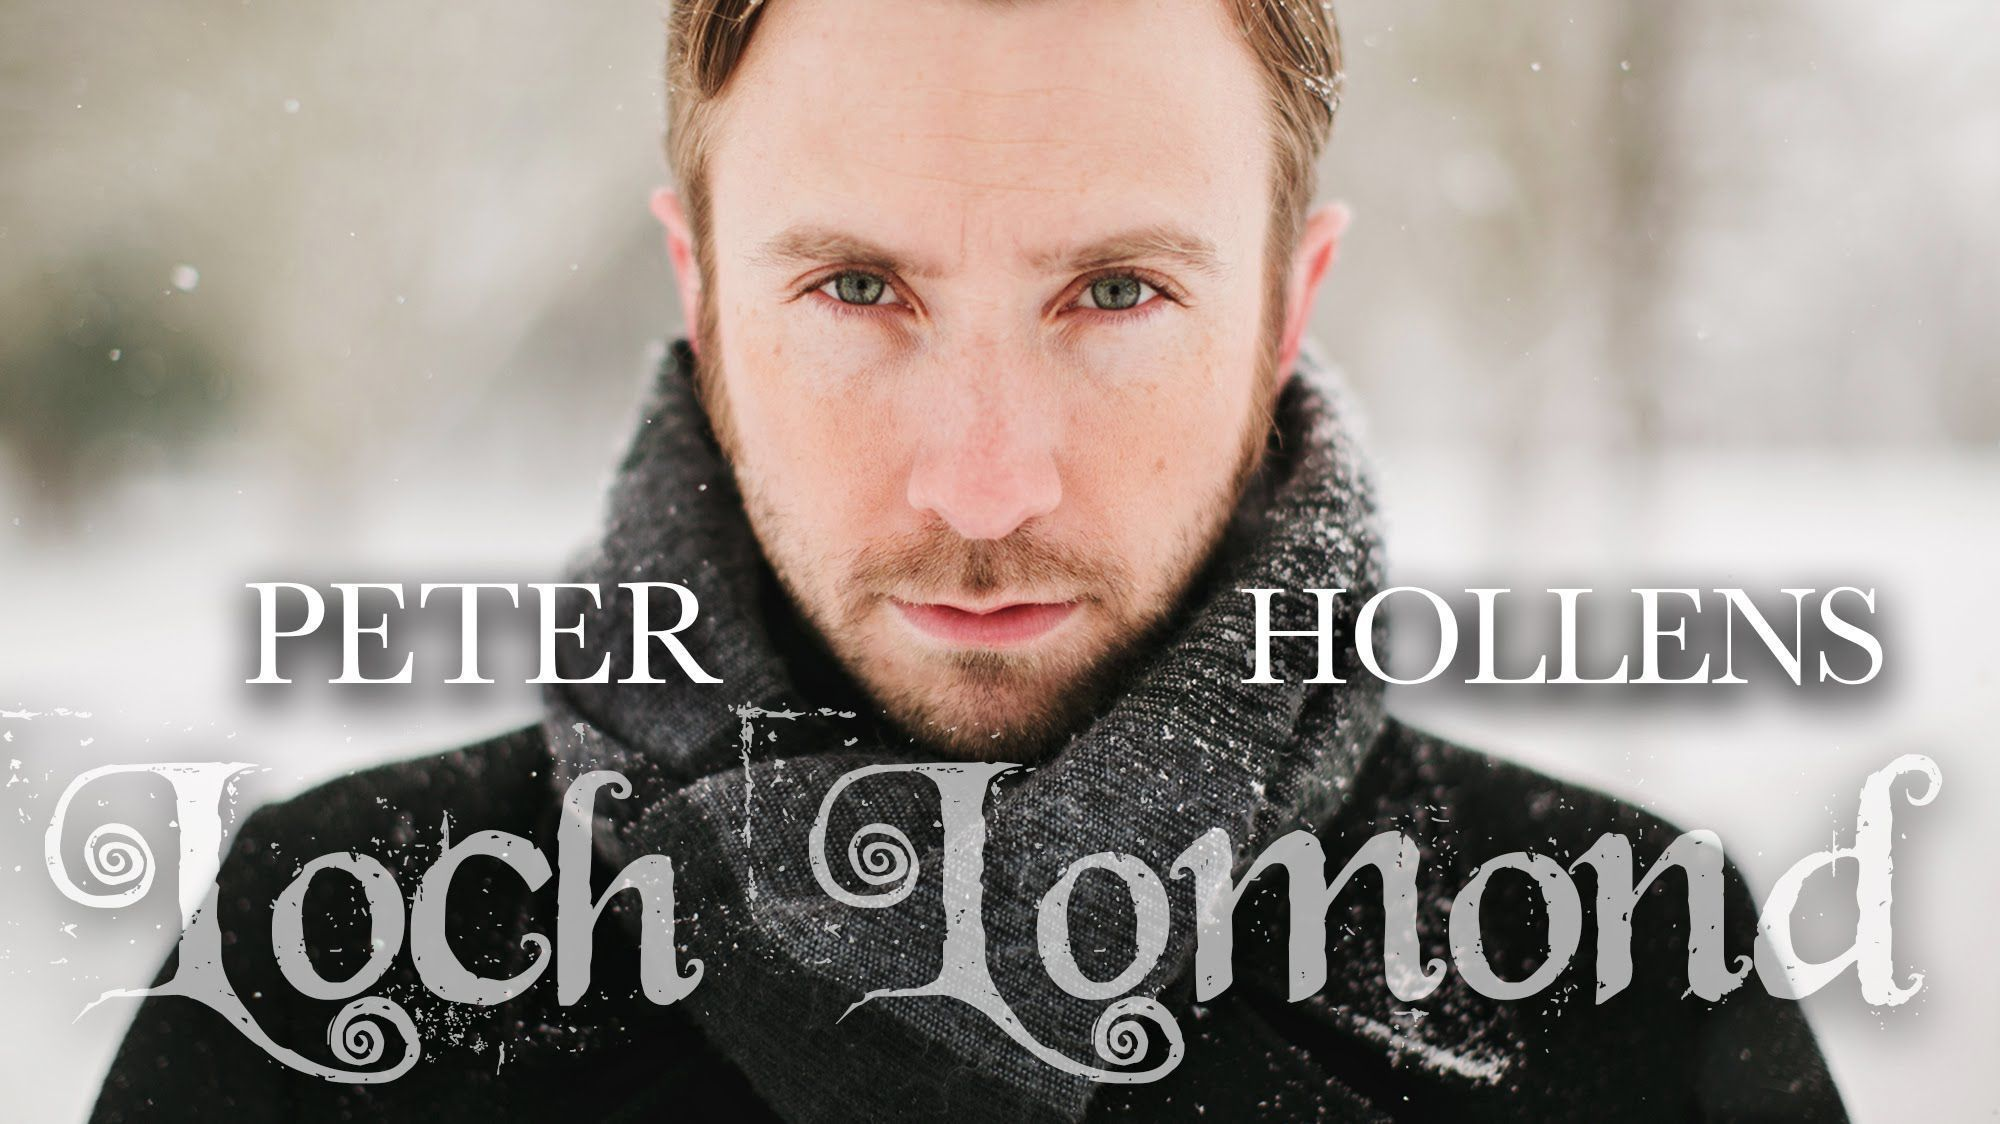 Loch Lomond - Peter Hollens~I've always loved this song and Peter Hollens did a smashing job of it as usual! #lochlomond Loch Lomond - Peter Hollens~I've always loved this song and Peter Hollens did a smashing job of it as usual! #lochlomond Loch Lomond - Peter Hollens~I've always loved this song and Peter Hollens did a smashing job of it as usual! #lochlomond Loch Lomond - Peter Hollens~I've always loved this song and Peter Hollens did a smashing job of it as usual! #lochlomond Loch Lomond - Pe #lochlomond